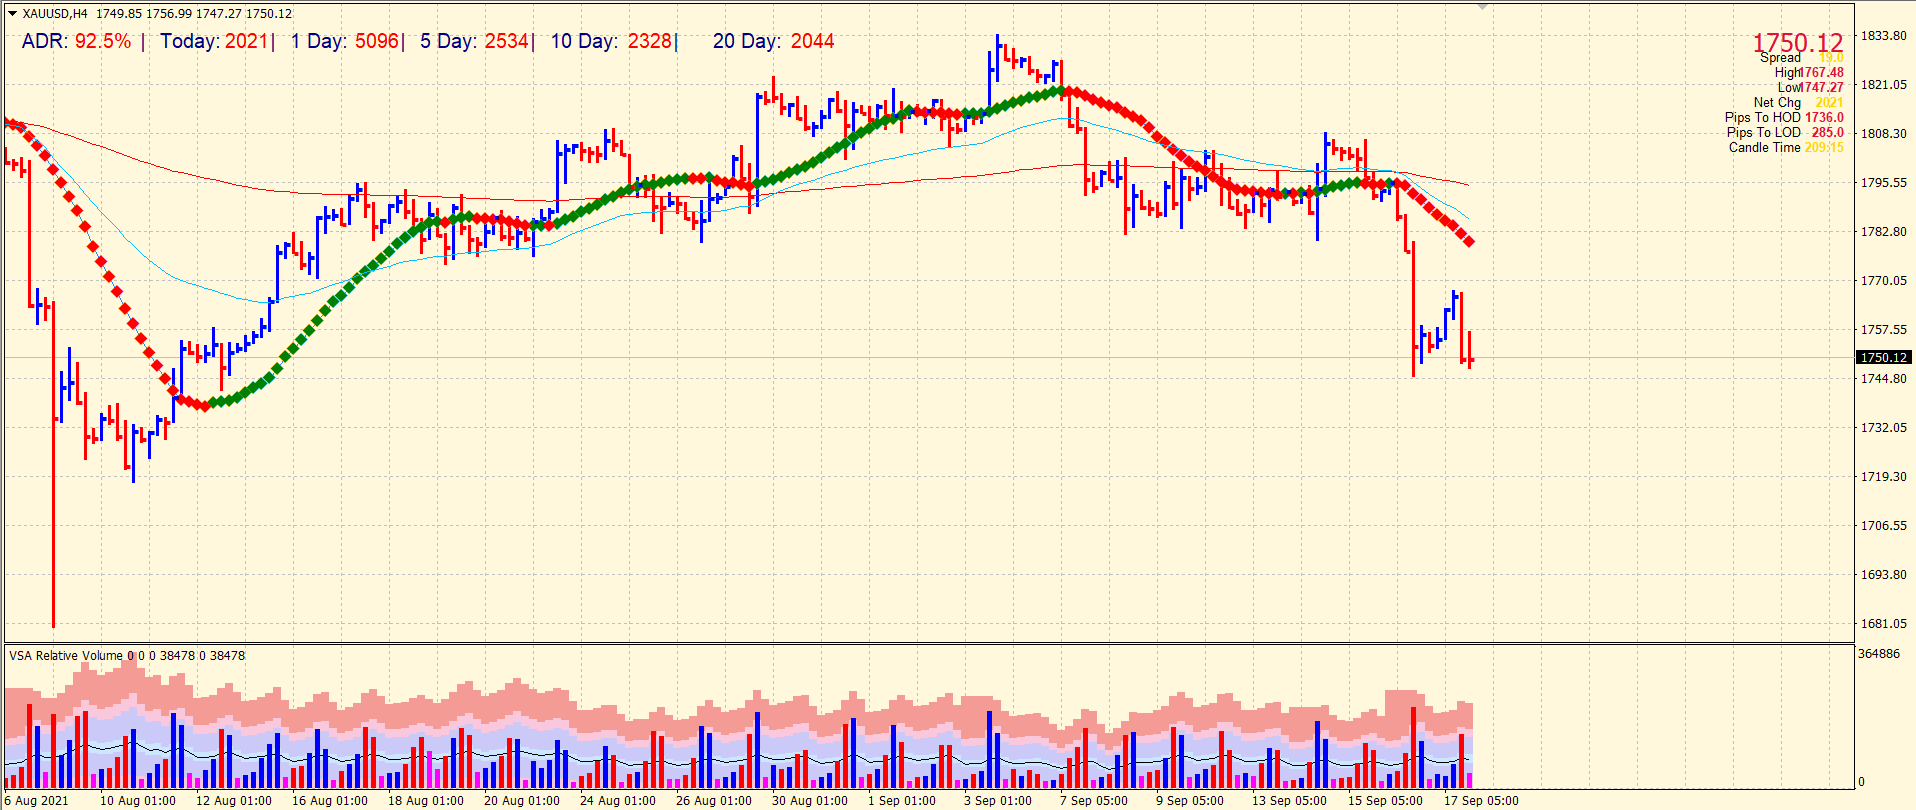 Gold 4-hour chart outlook